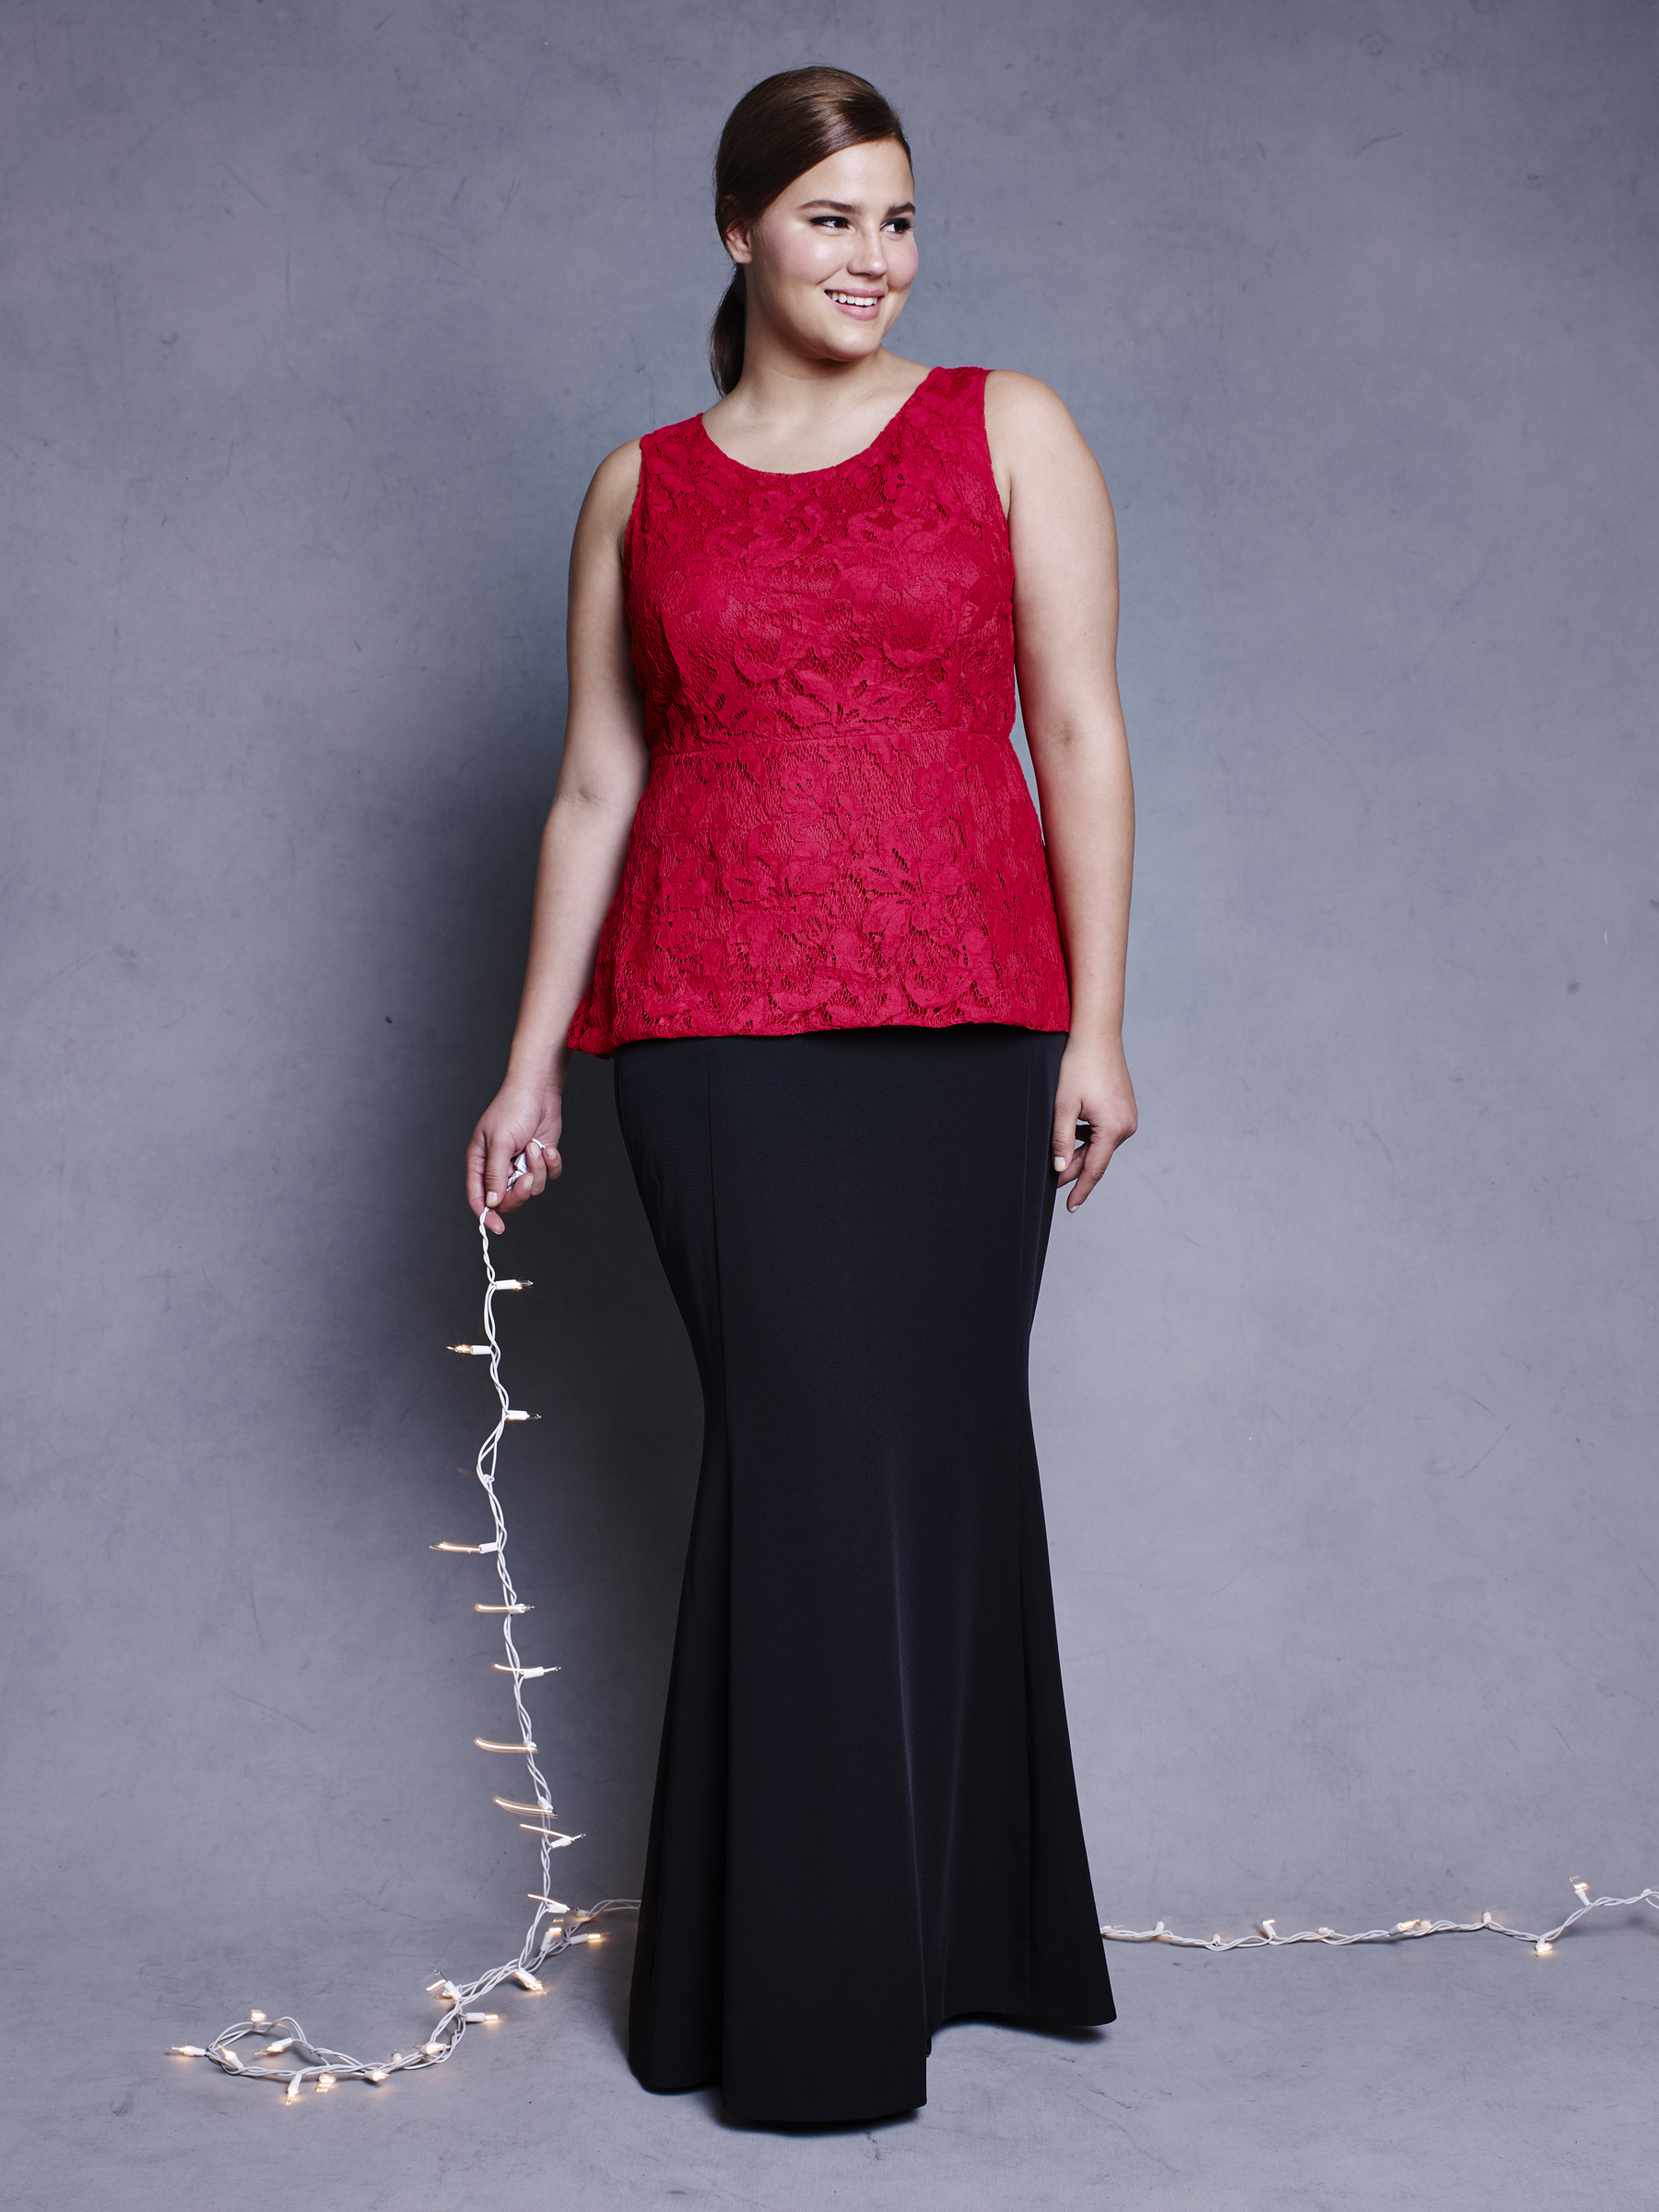 Dresses at Lane Bryant – Fashion design images